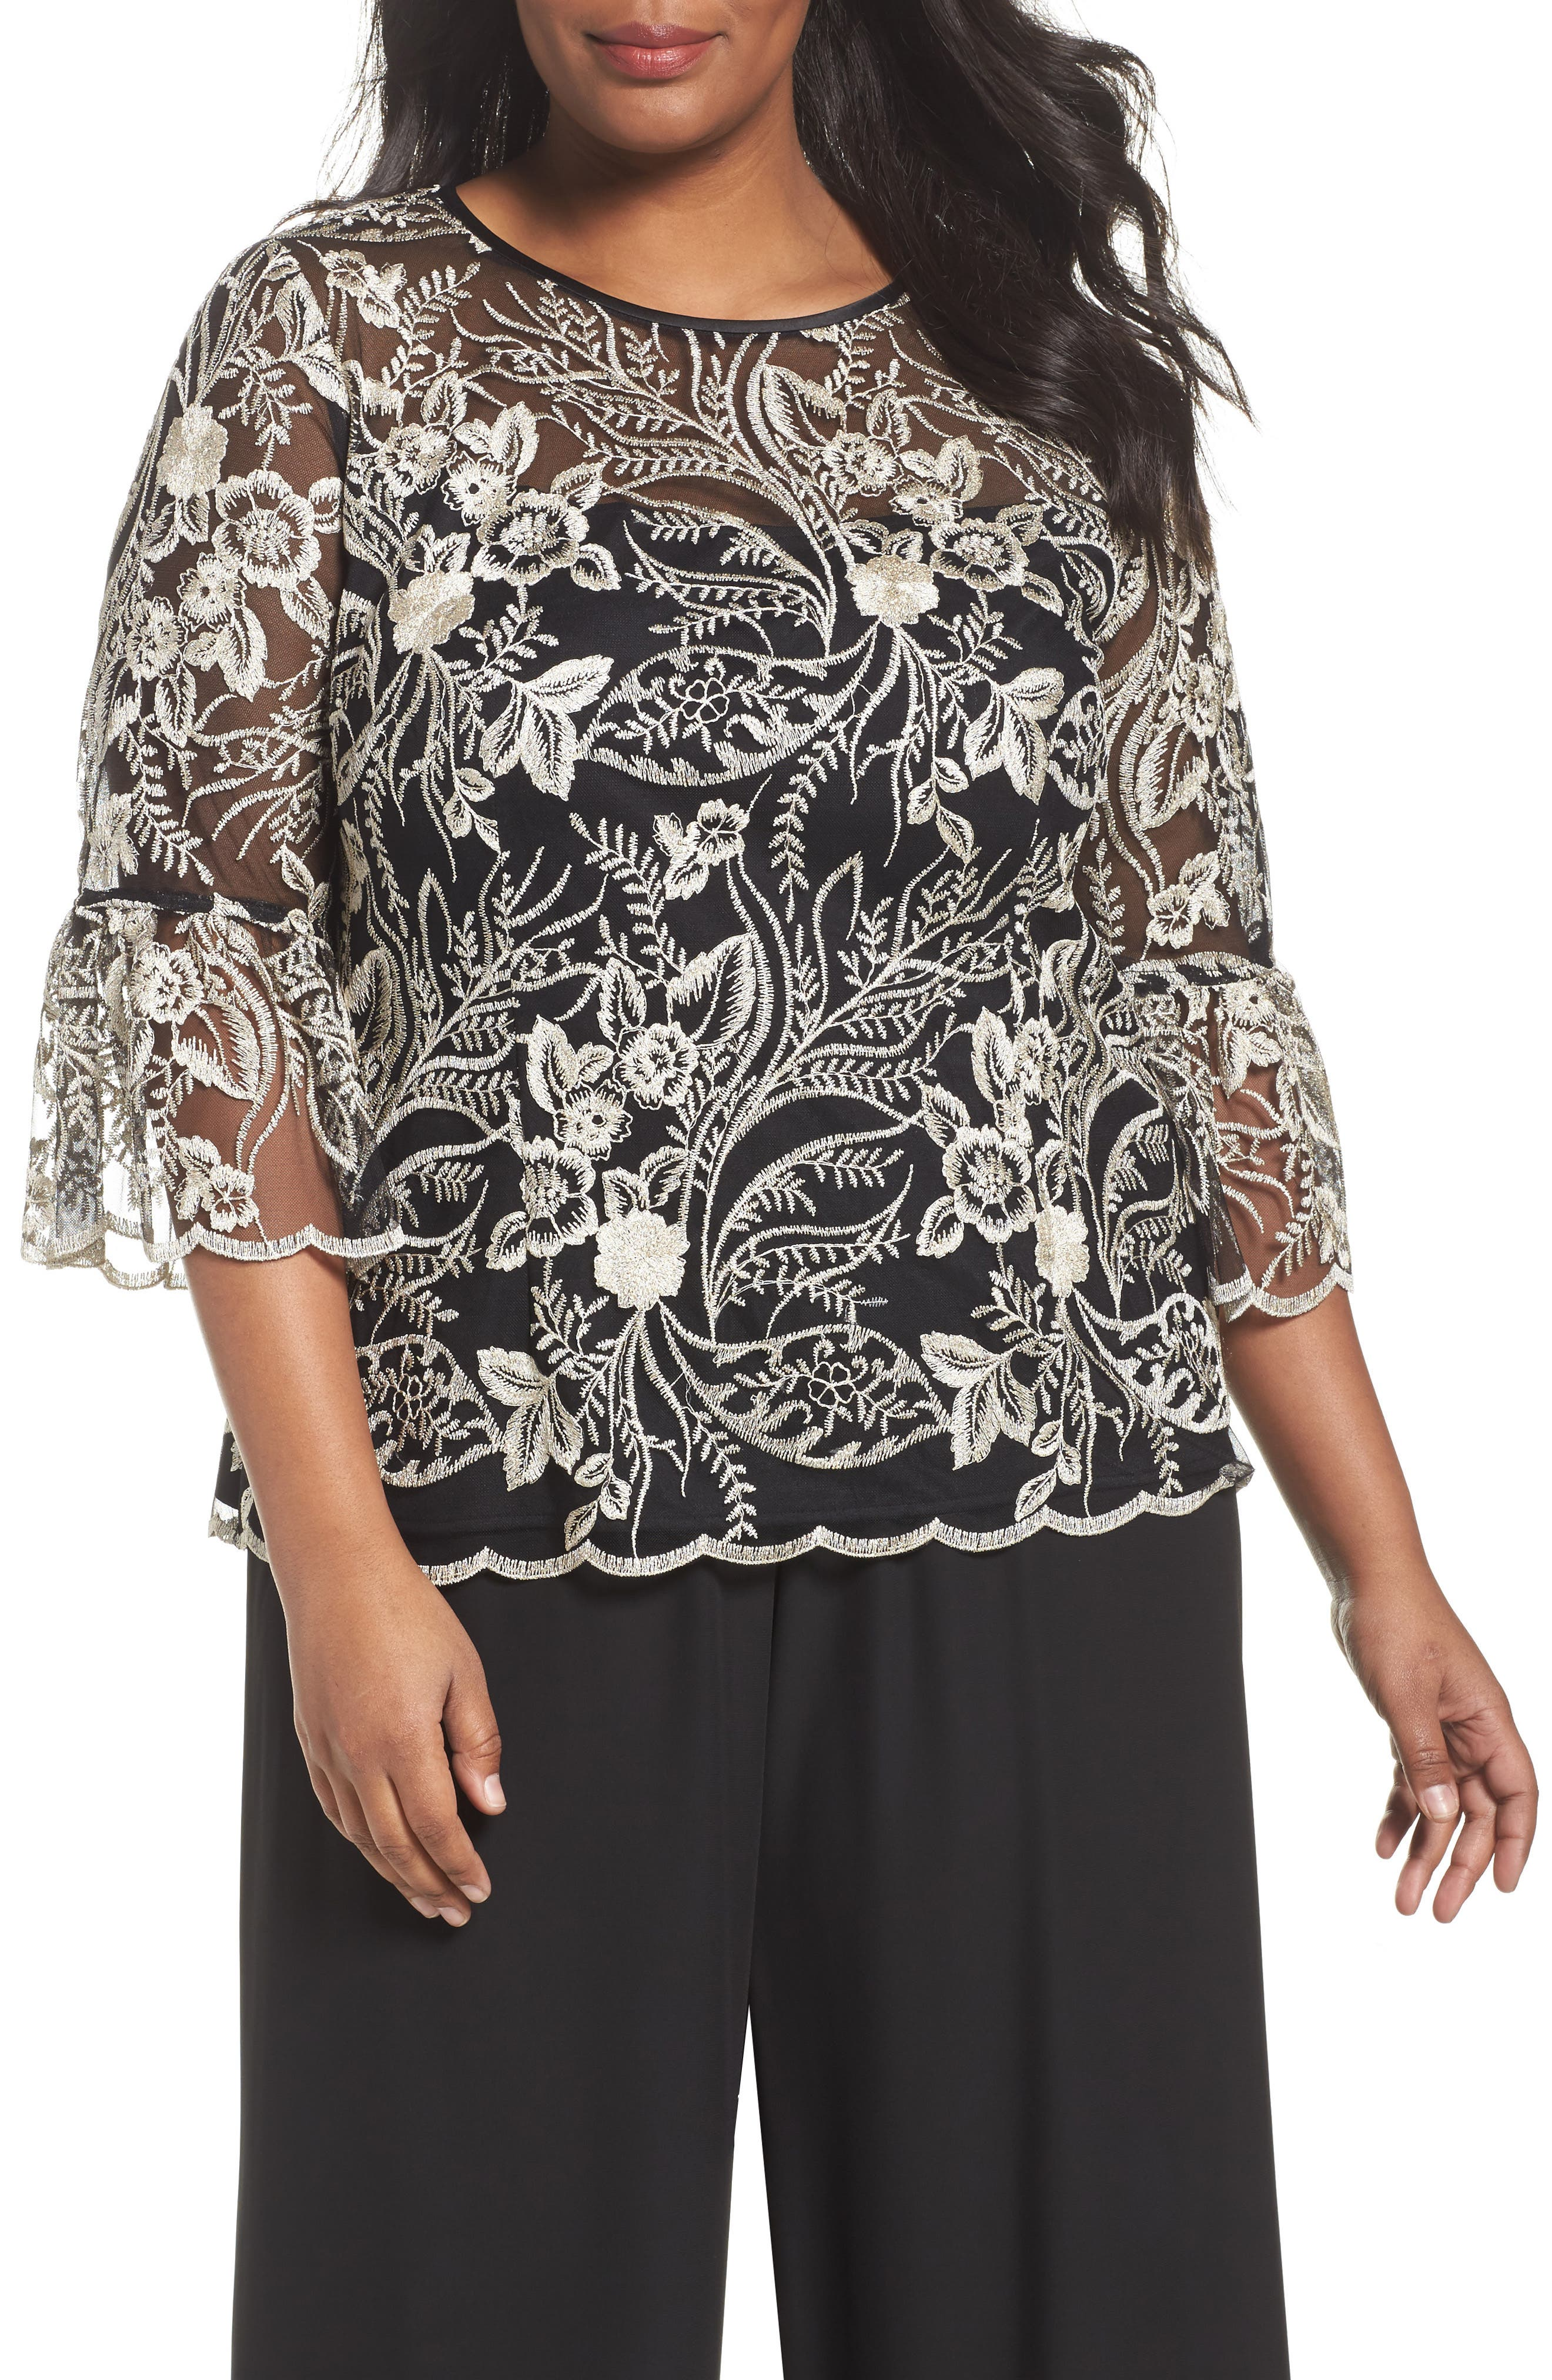 Alternate Image 1 Selected - Alex Evenings Embroidered Bell Sleeve Blouse (Plus Size)